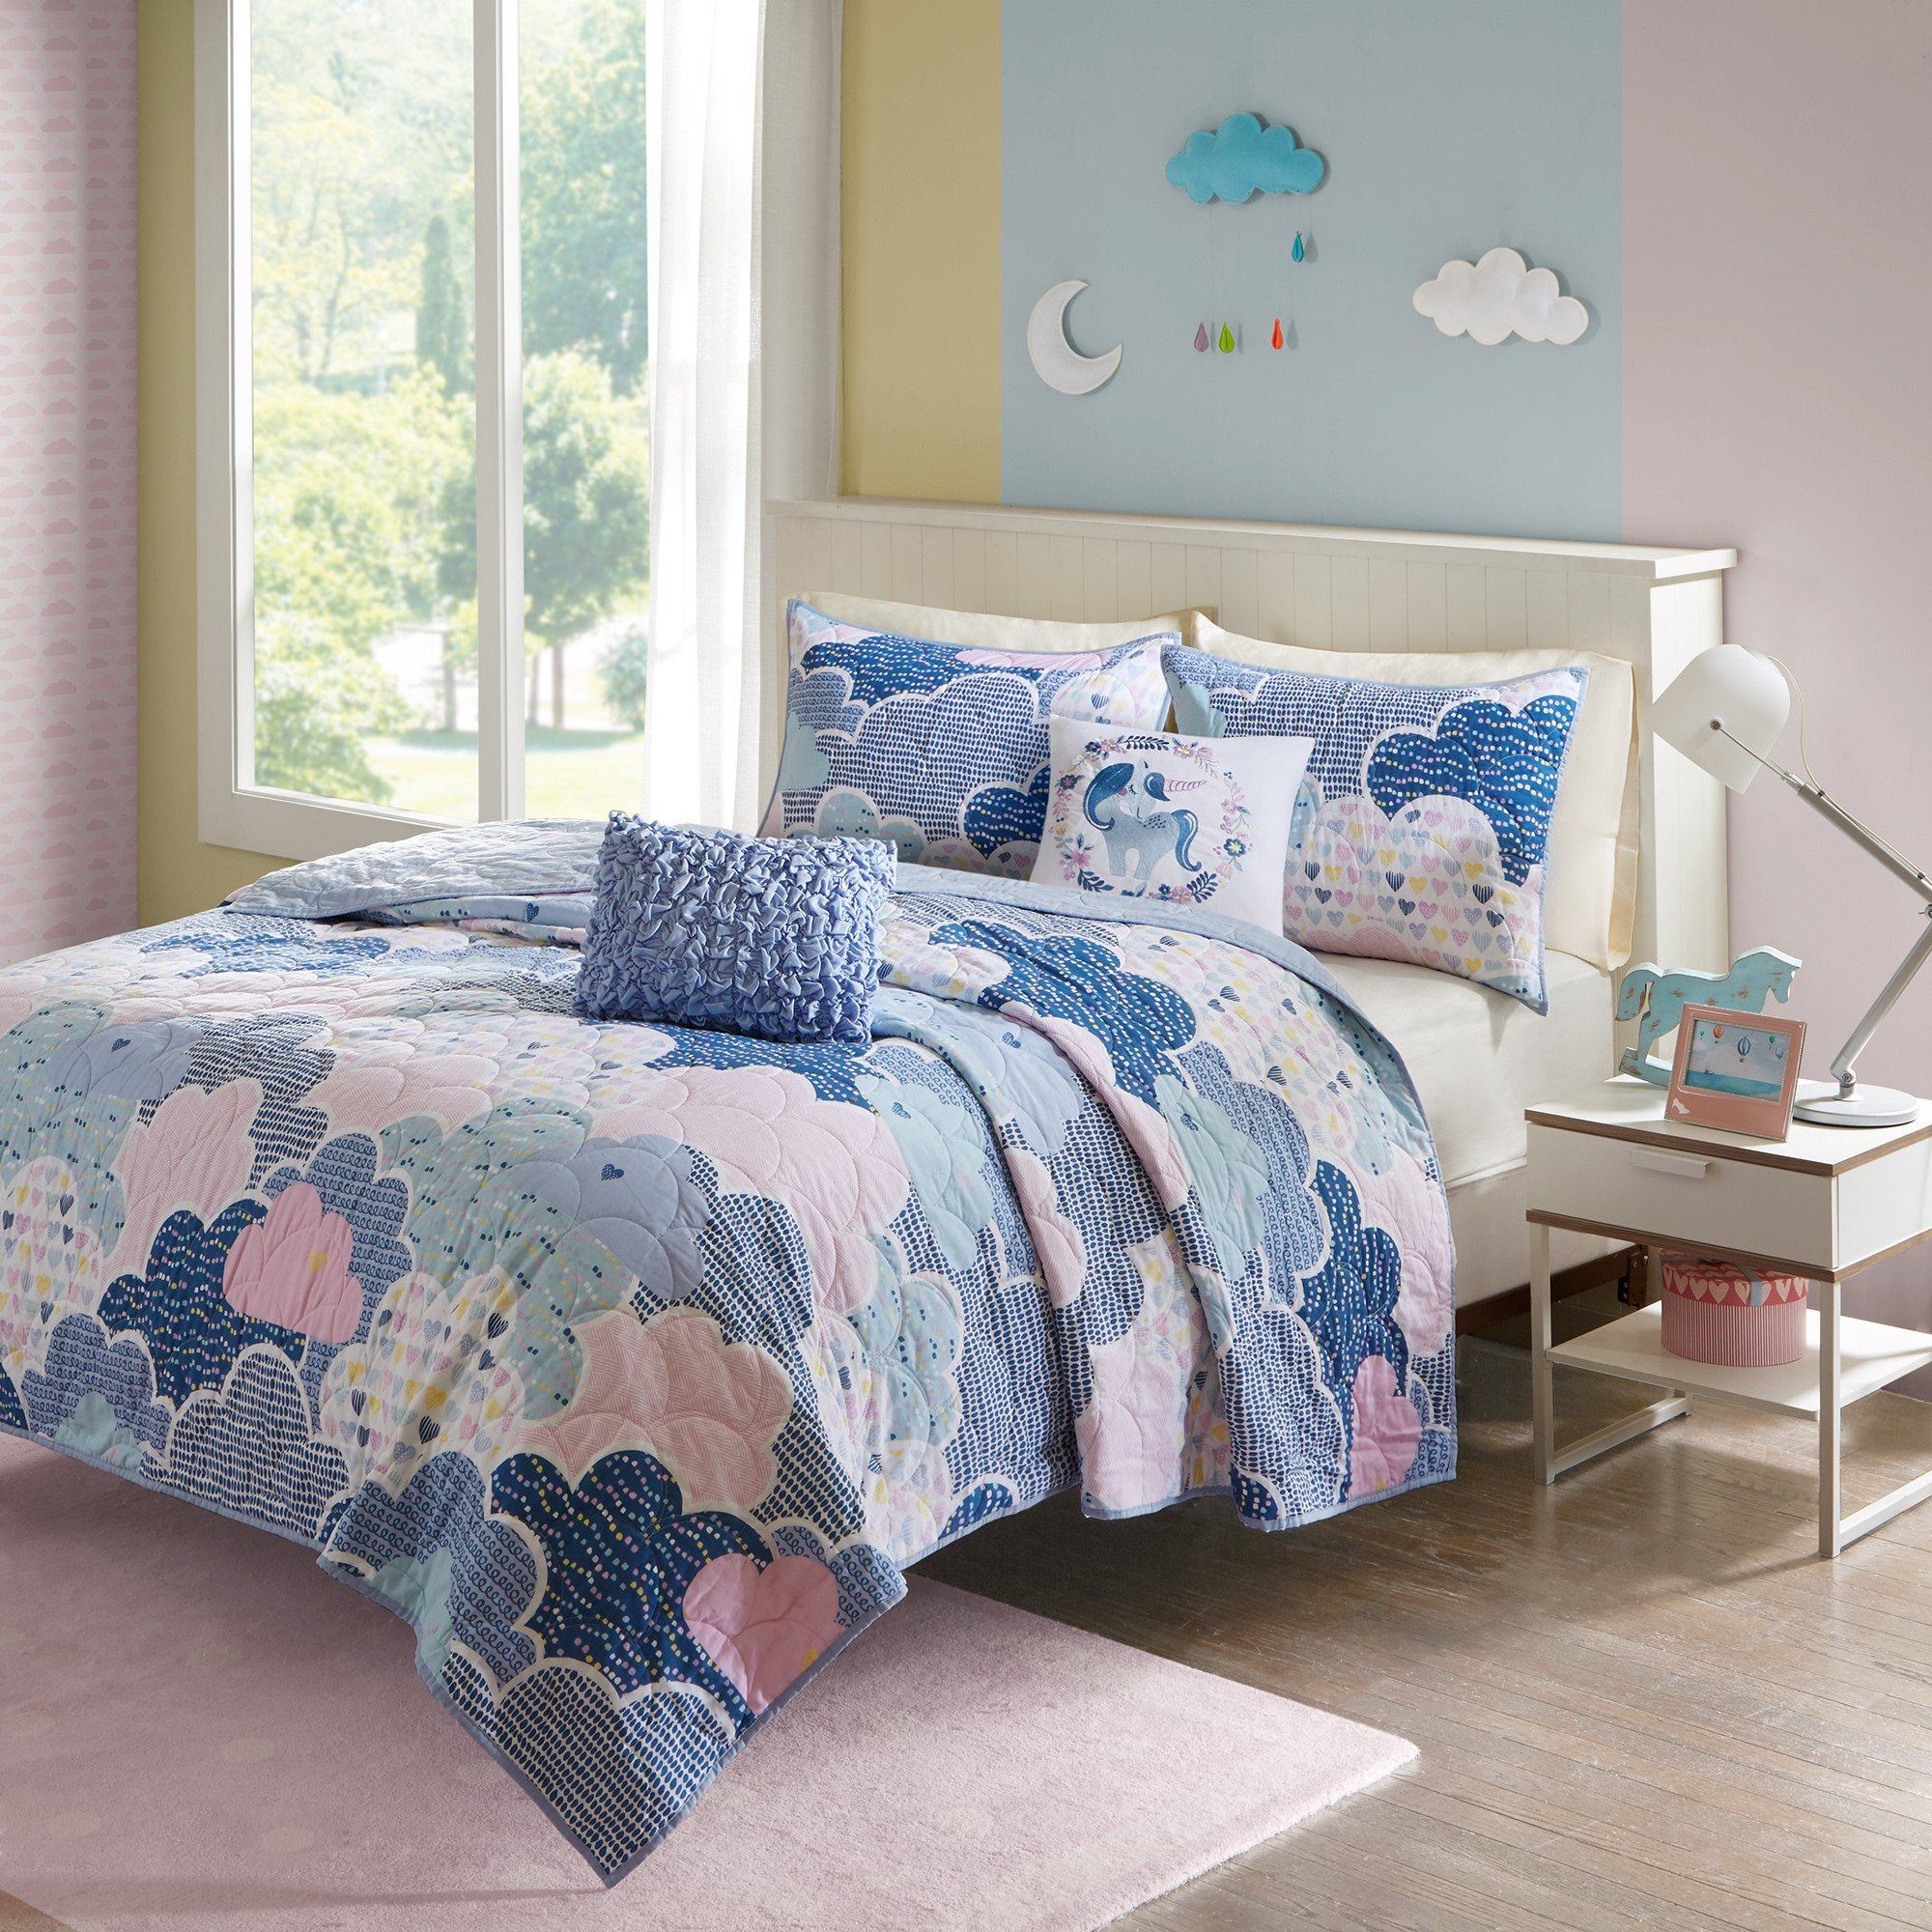 5 Piece Girls Blue Pink Purple White Color Cloud Themed Coverlet Full Queen Set, Sky Clouds Bedding, Playful Fun Polka Dot Heart Love Swirl Dots Pattern, Cotton by ON (Image #2)